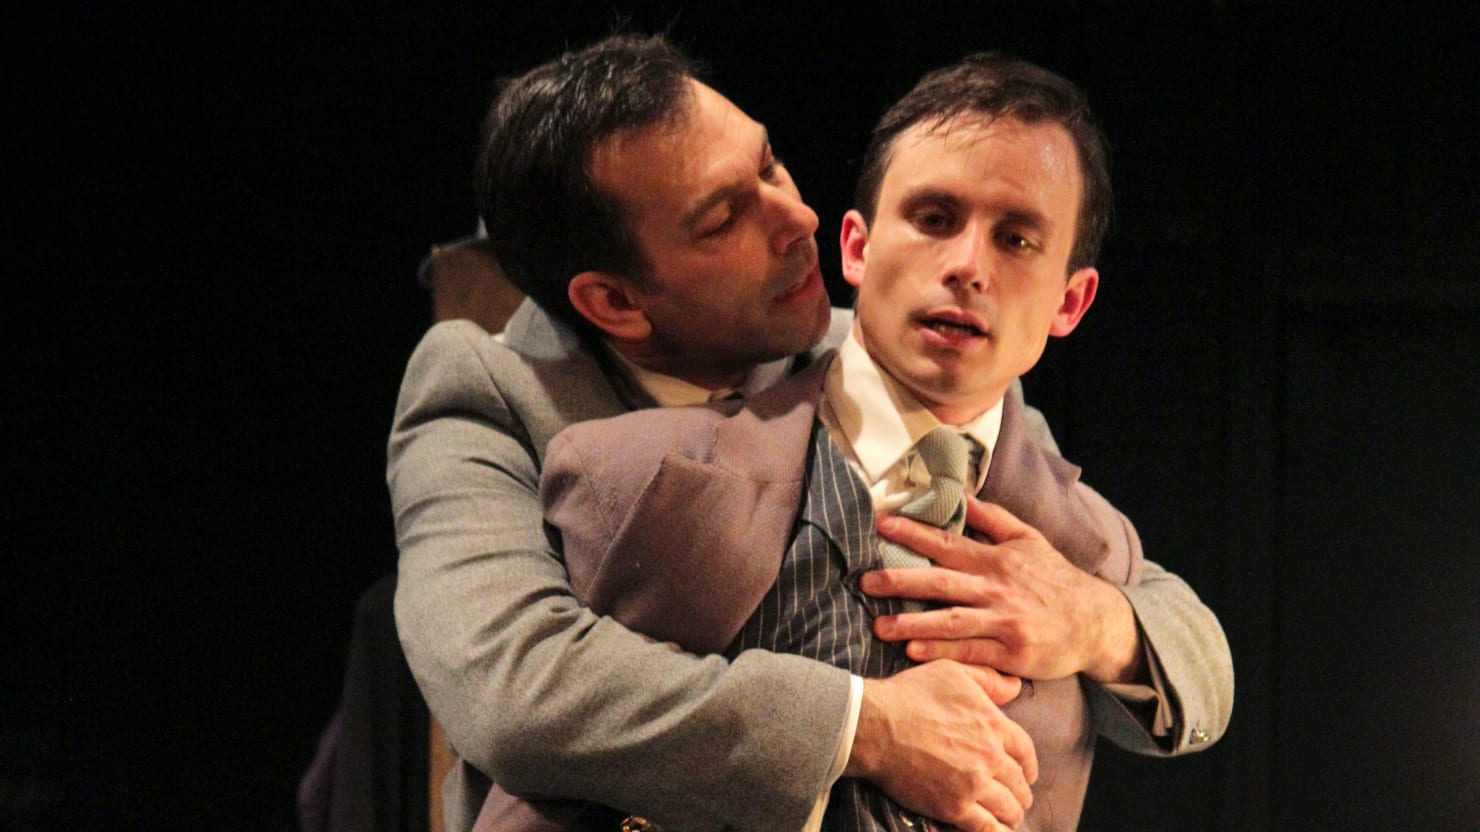 The Actors Who Trapped Gay Men Into Having Illegal Sex